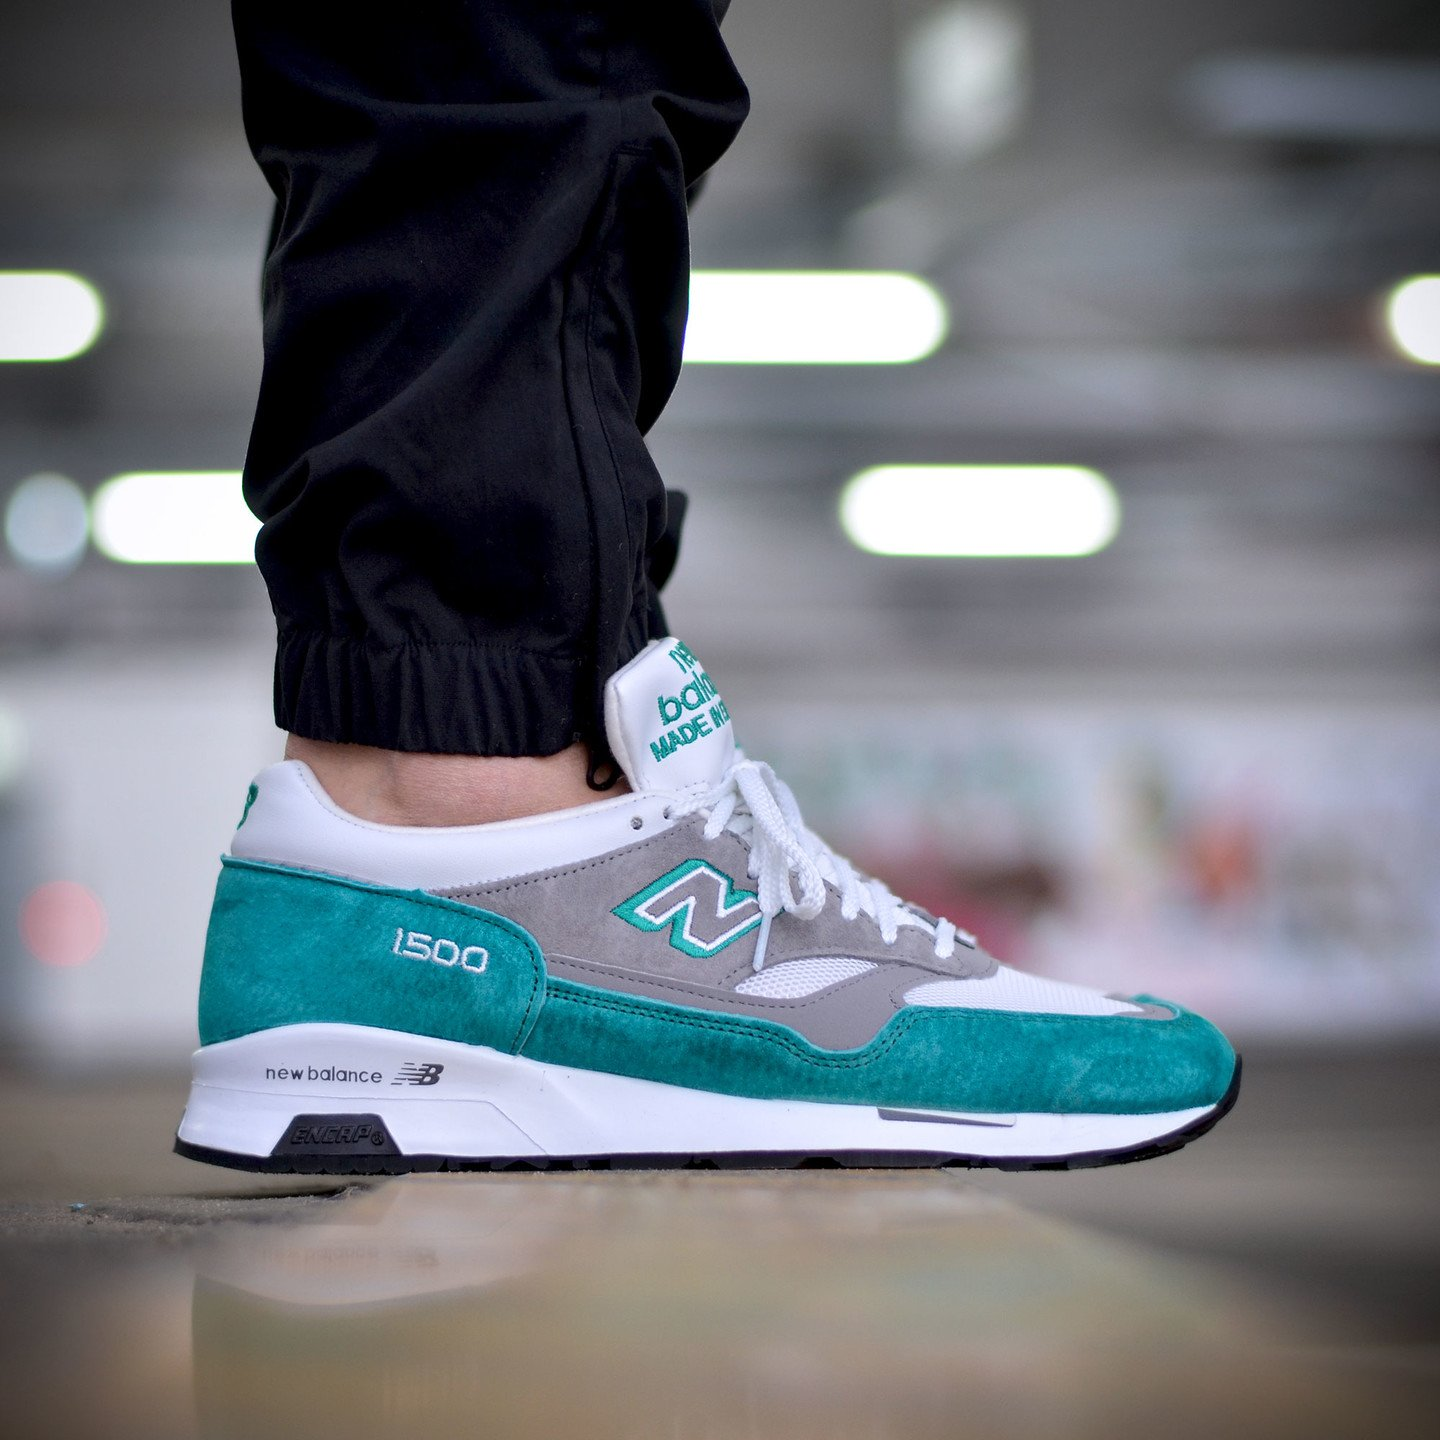 New Balance M1500 TG - Made in England Teal / Grey M1500TG-44.5